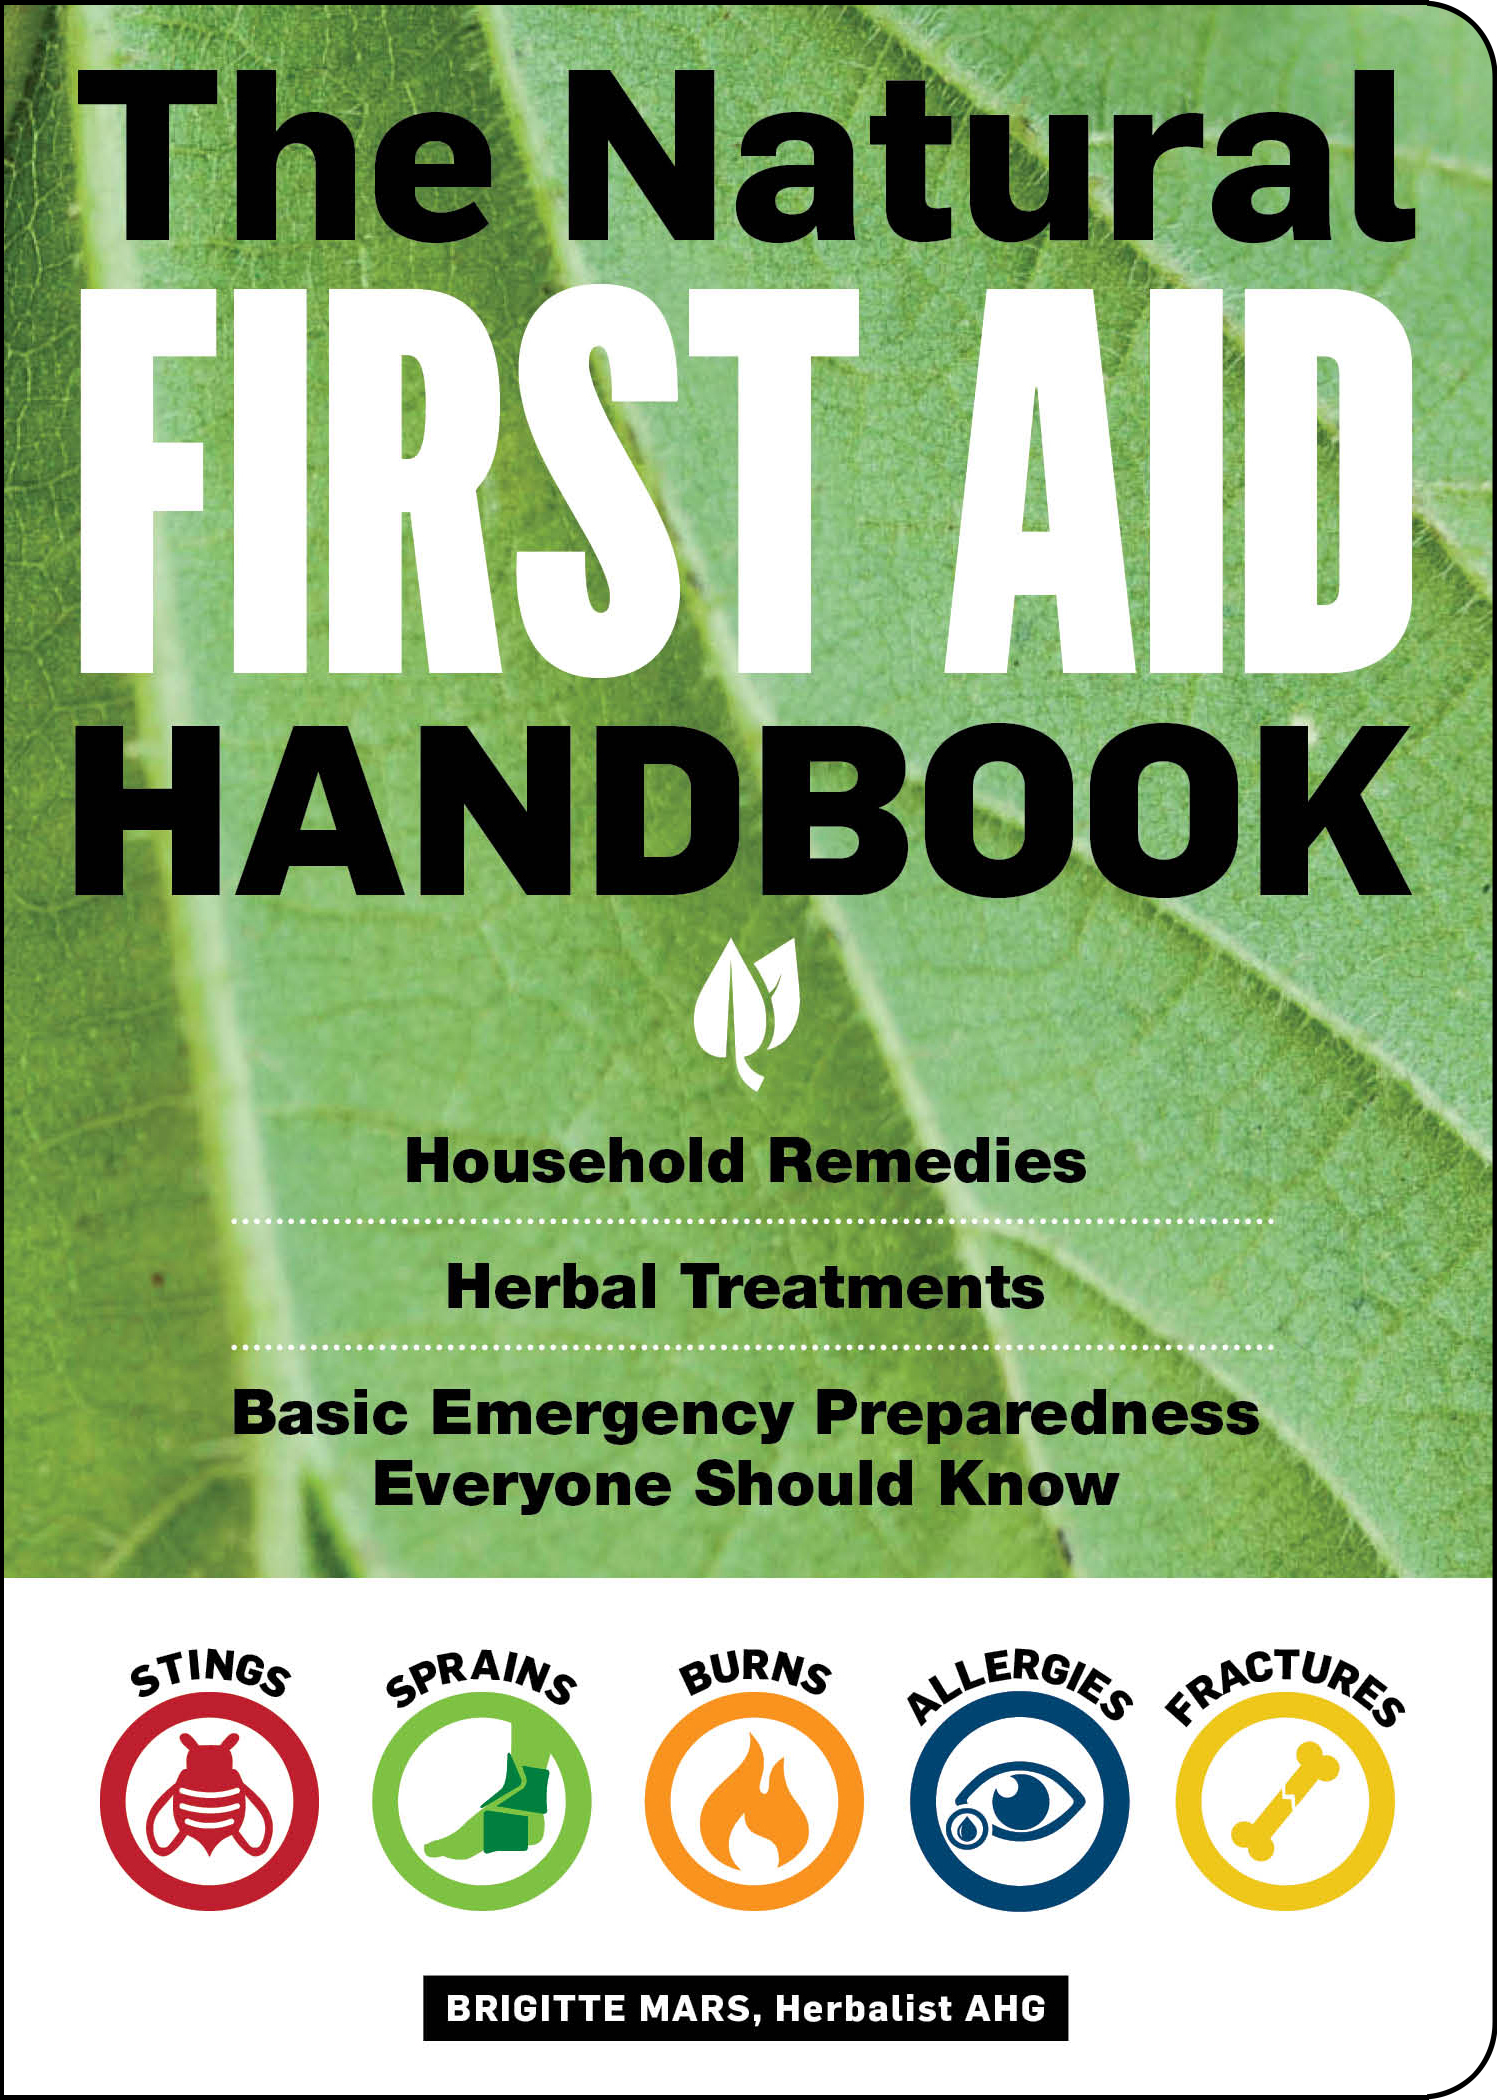 The Natural First Aid Handbook Household Remedies, Herbal Treatments, and Basic Emergency Preparedness Everyone Should Know - Brigitte Mars